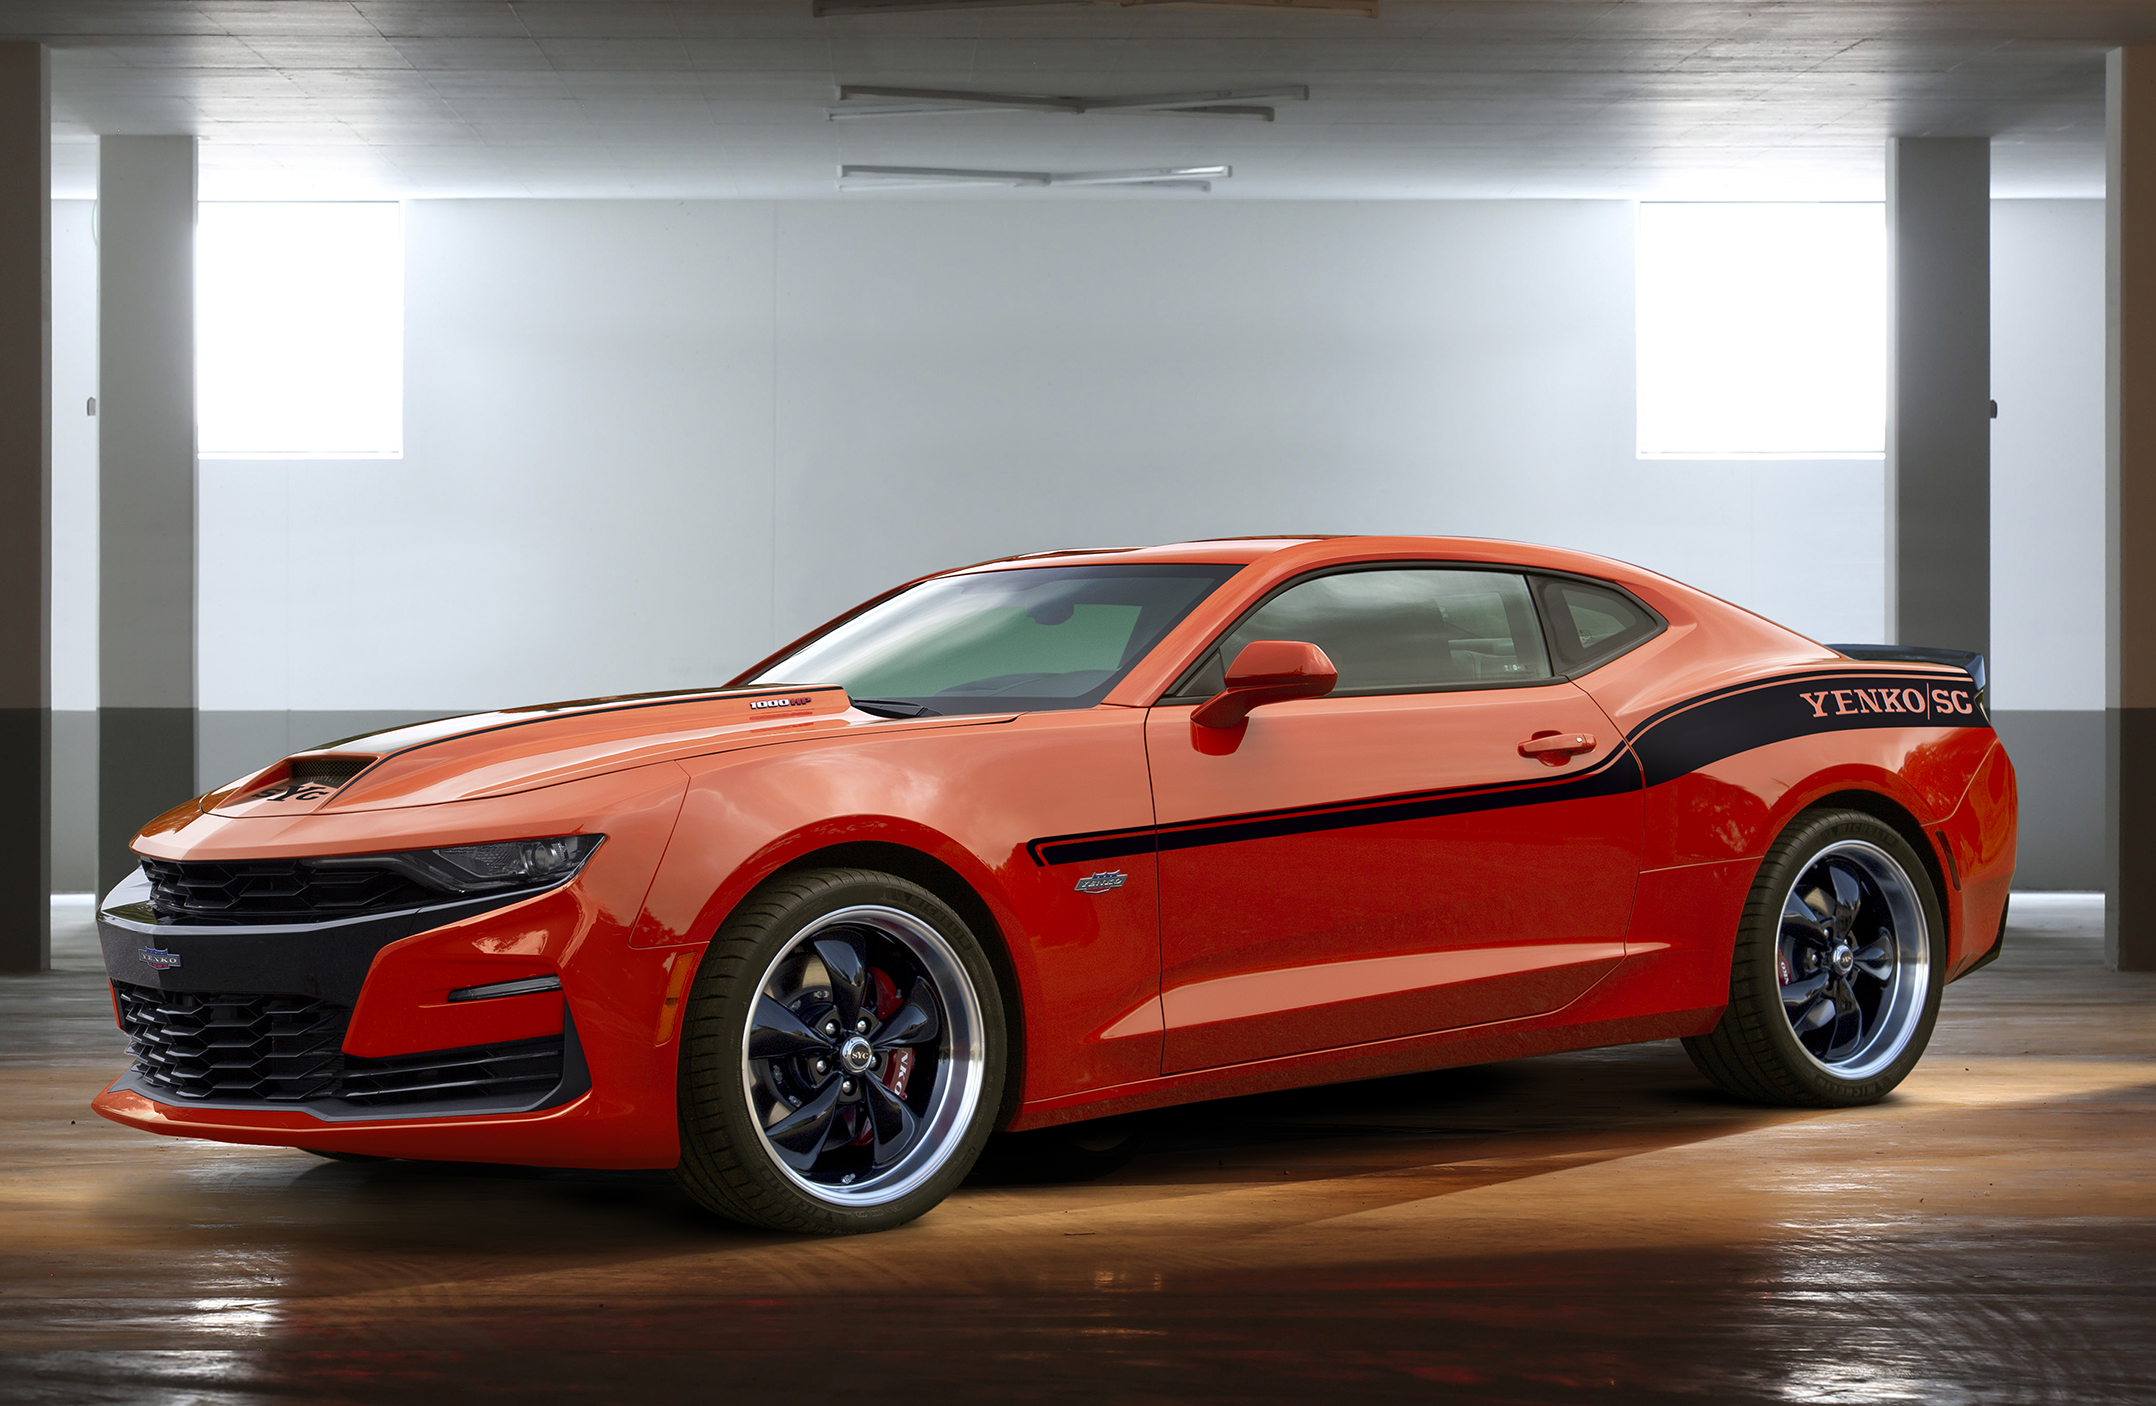 The 2019 Yenko Camaro Is a 1,000 HP Monster You Can Buy at